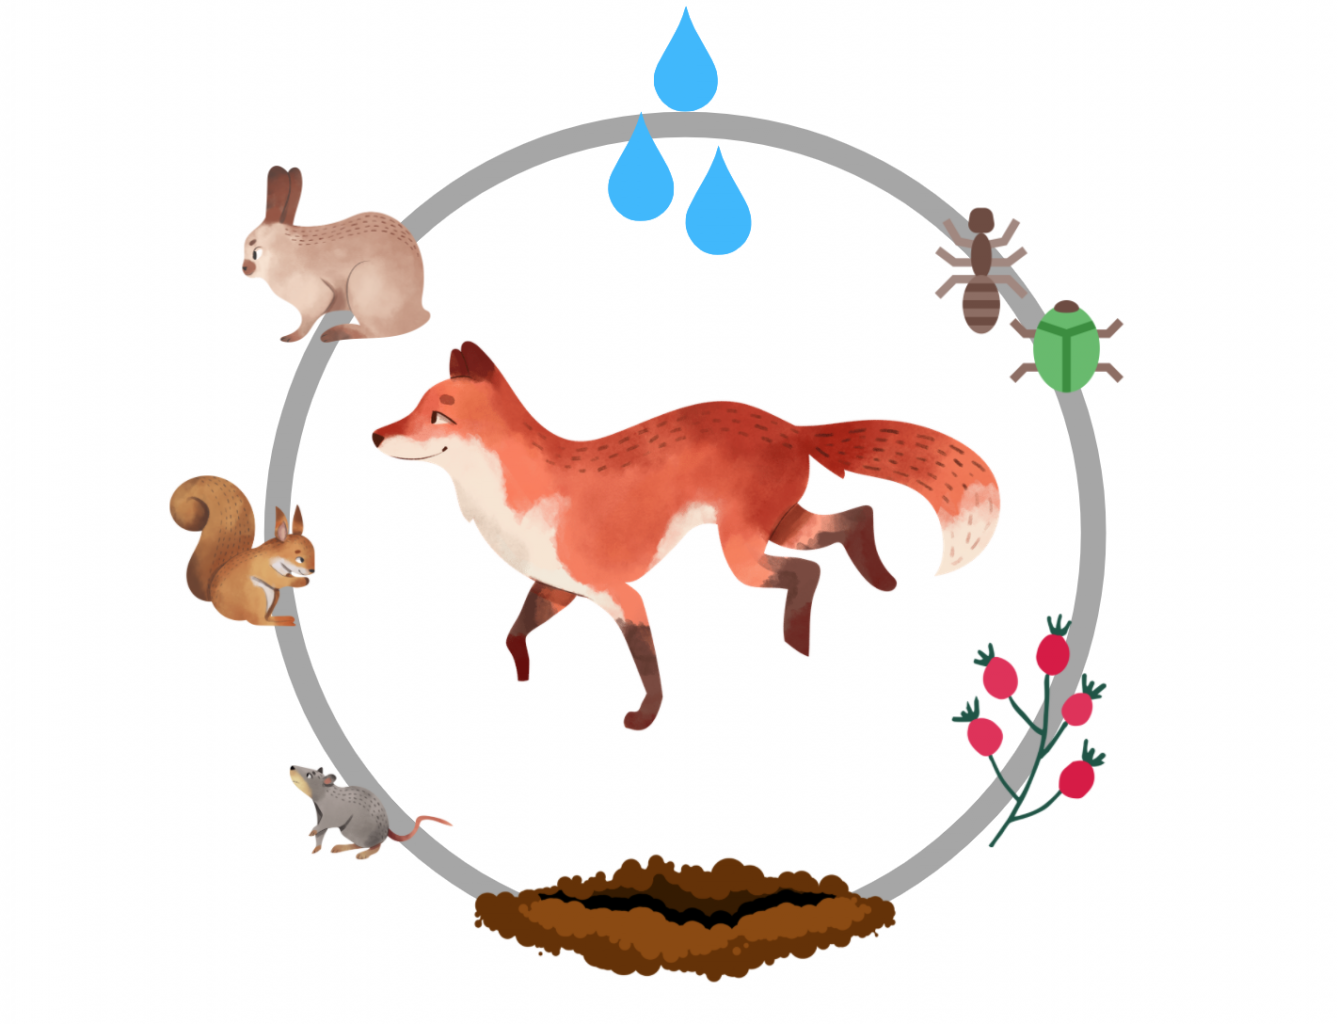 An illustrated fox surrounded by a squirrel, a rabbit, a mouse, insects, berries, water, and a den